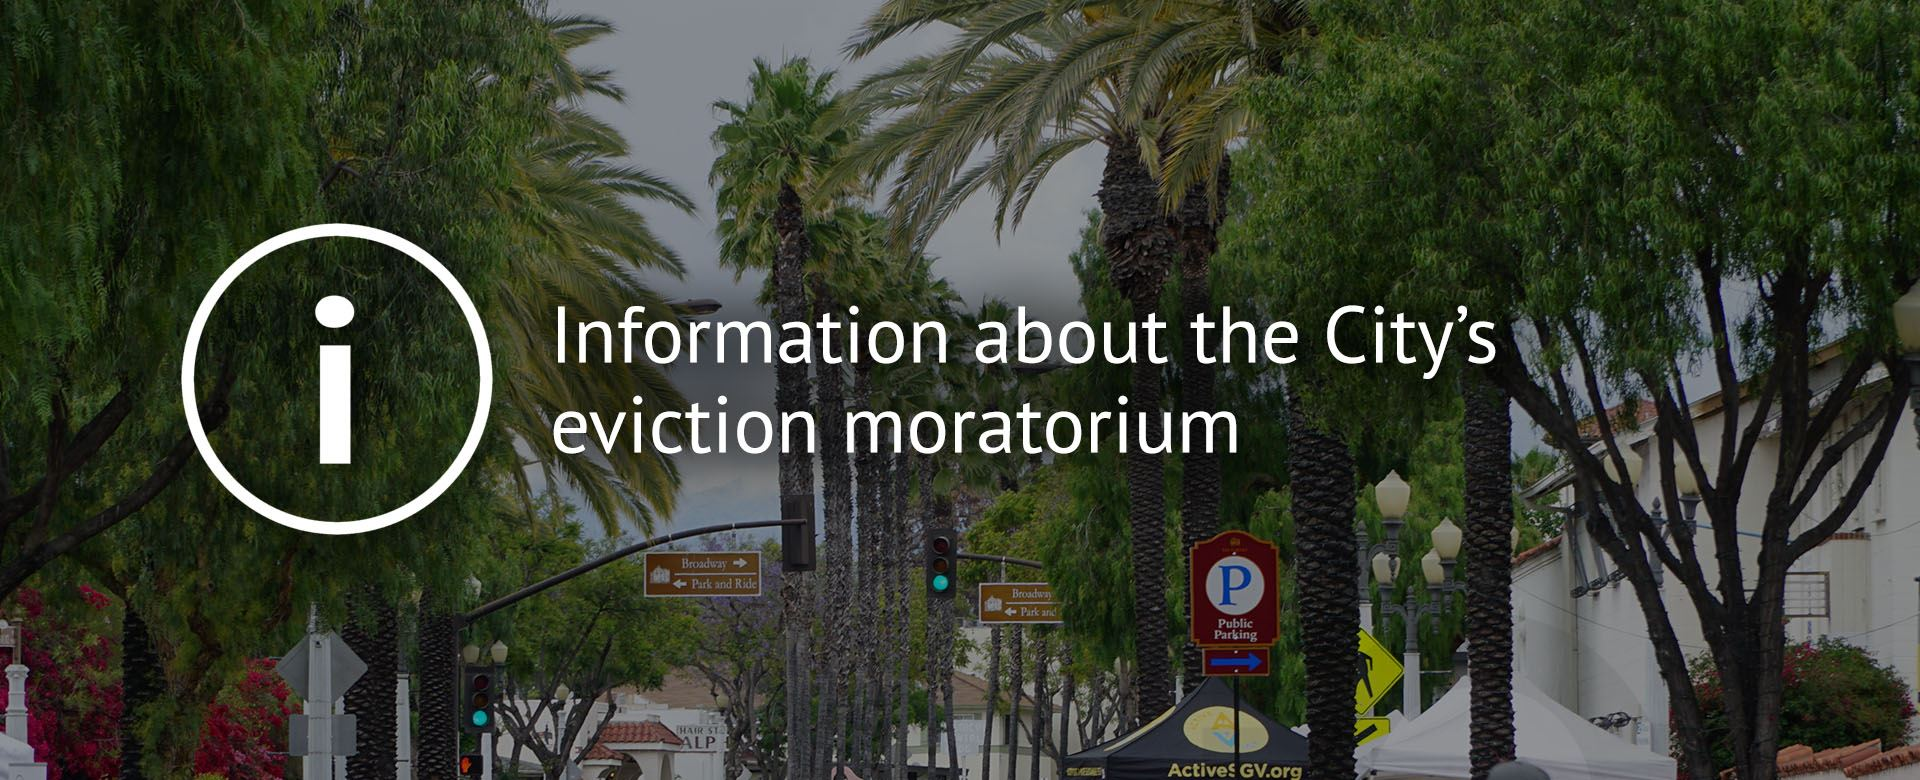 Information about the City's eviction moratorium